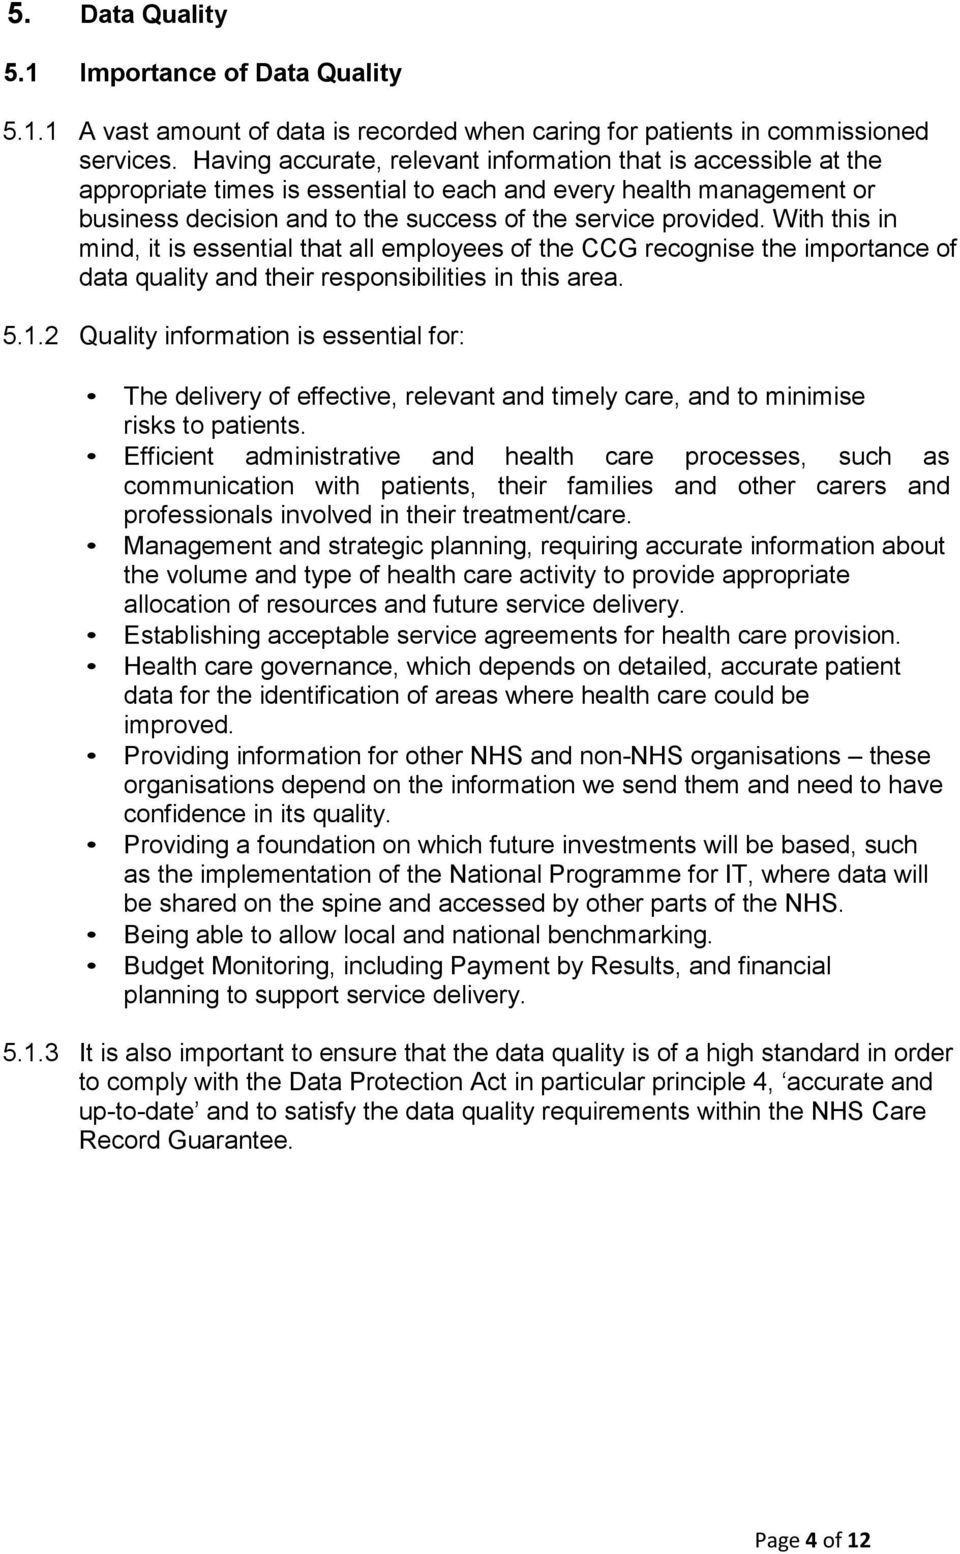 With this in mind, it is essential that all employees of the CCG recognise the importance of data quality and their responsibilities in this area. 5.1.